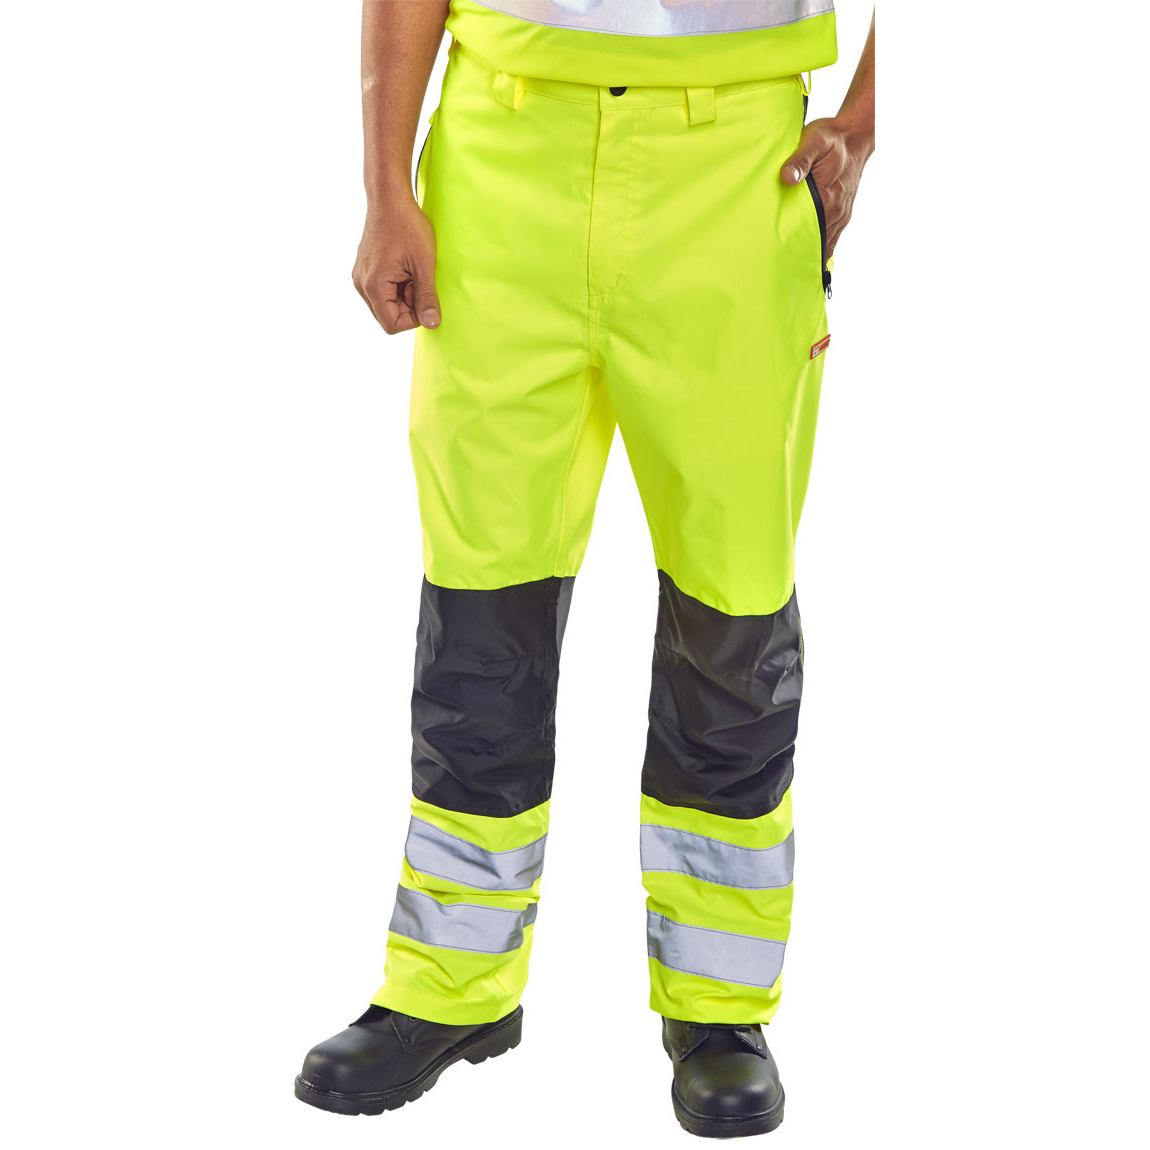 High Visibility B-Seen Contrast Trousers Hi-Vis Waterproof XL Saturn Yellow Ref BD85SYXL *Up to 3 Day Leadtime*